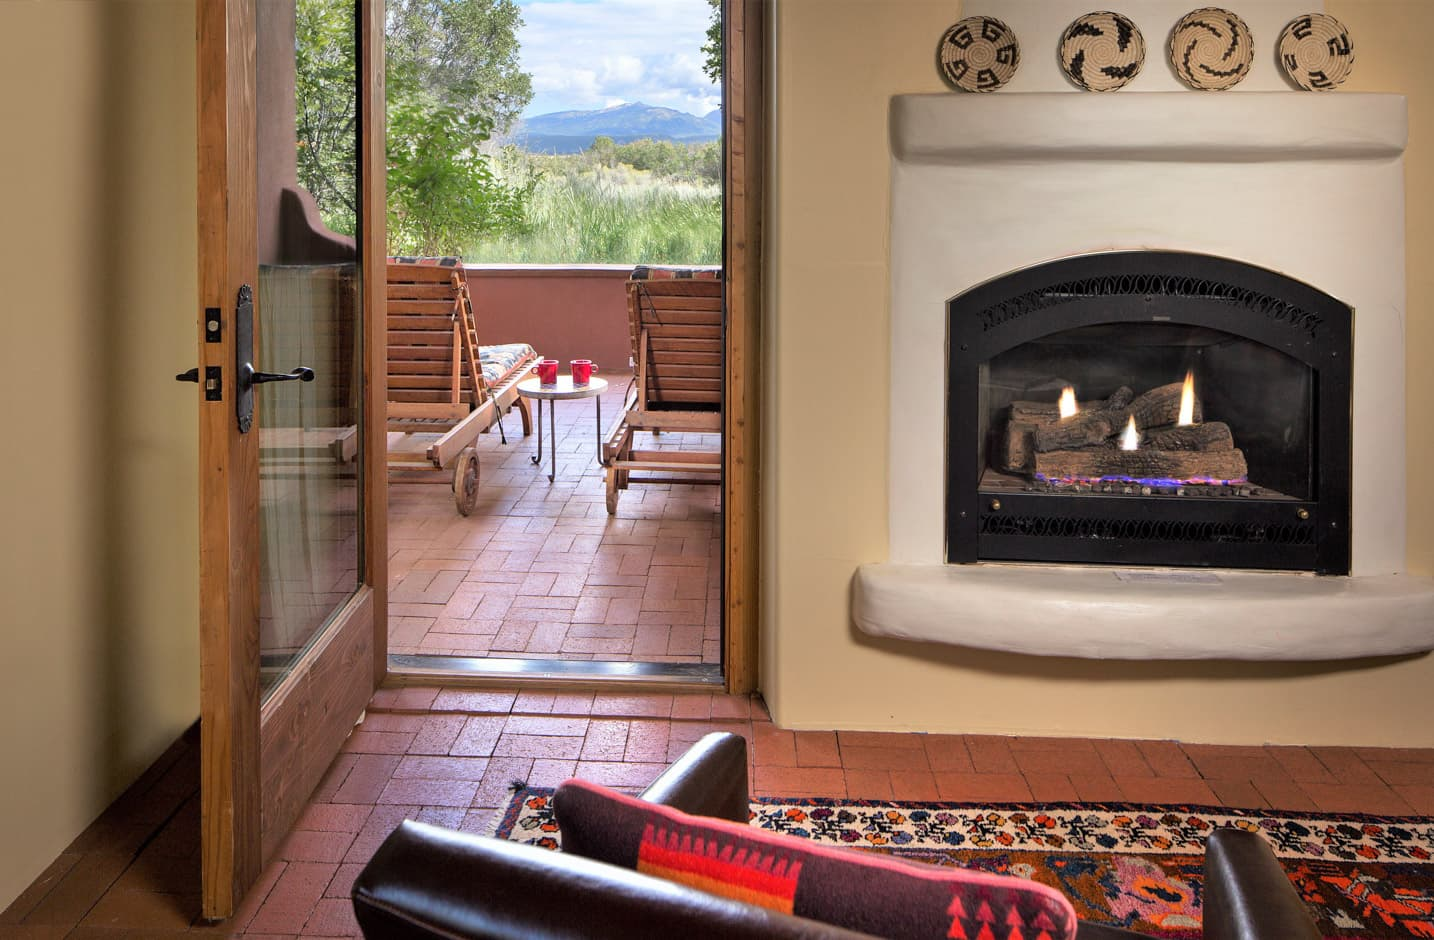 A gas firplace and a patio with two chairs and a view of a mountain